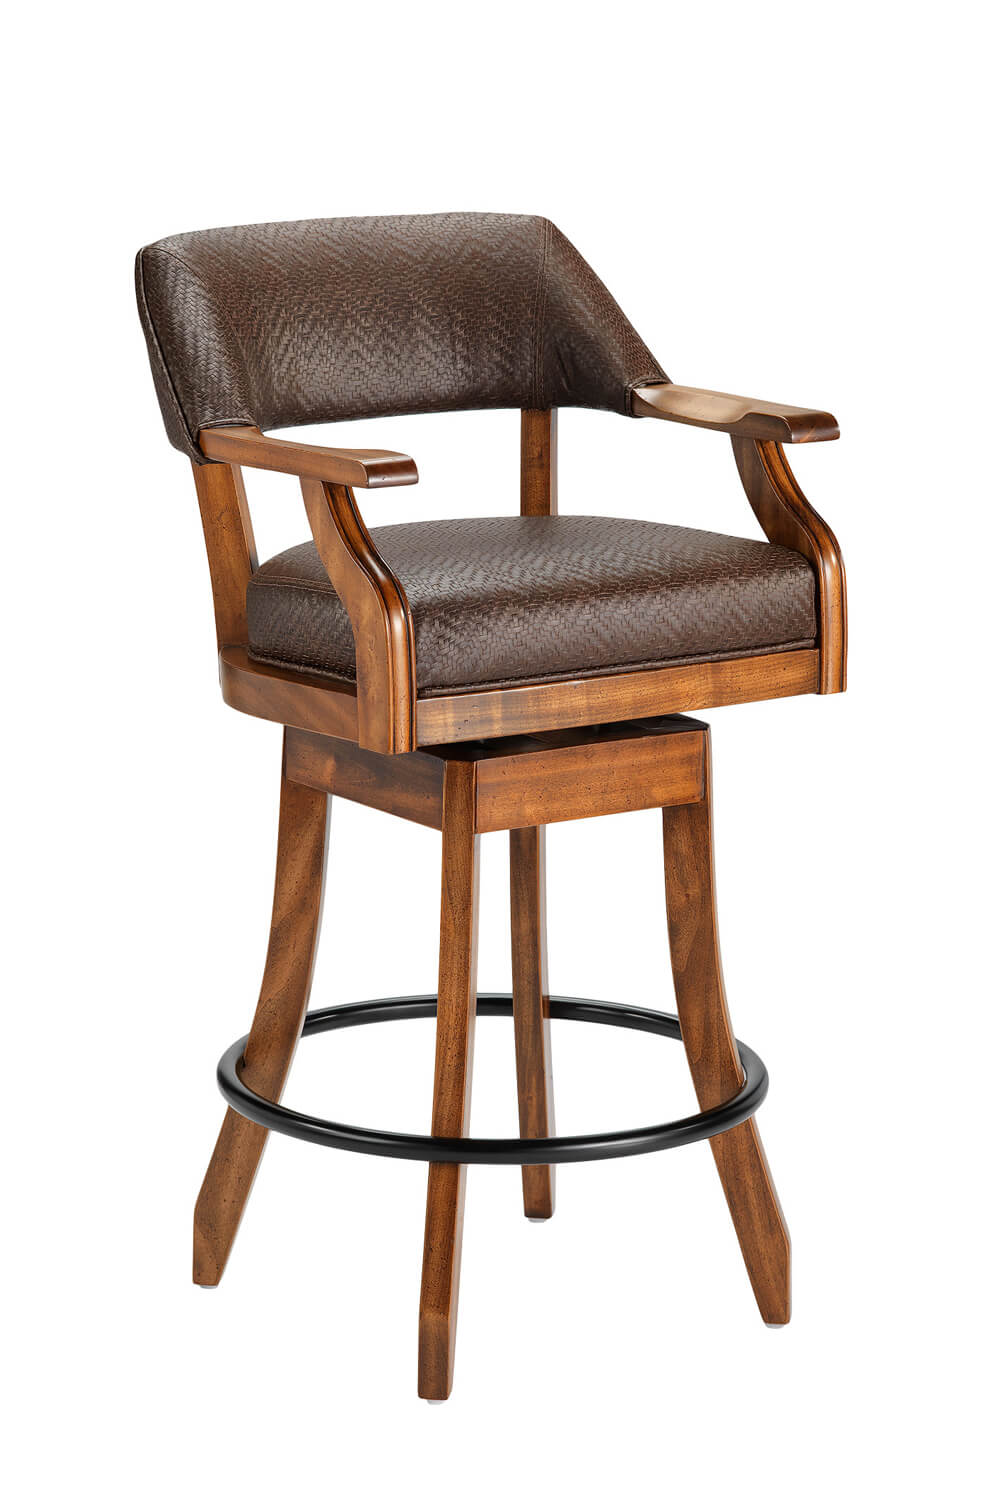 Buy Darafeev S Patriot Maple Wood Swivel Stool W Arms Free Shipping